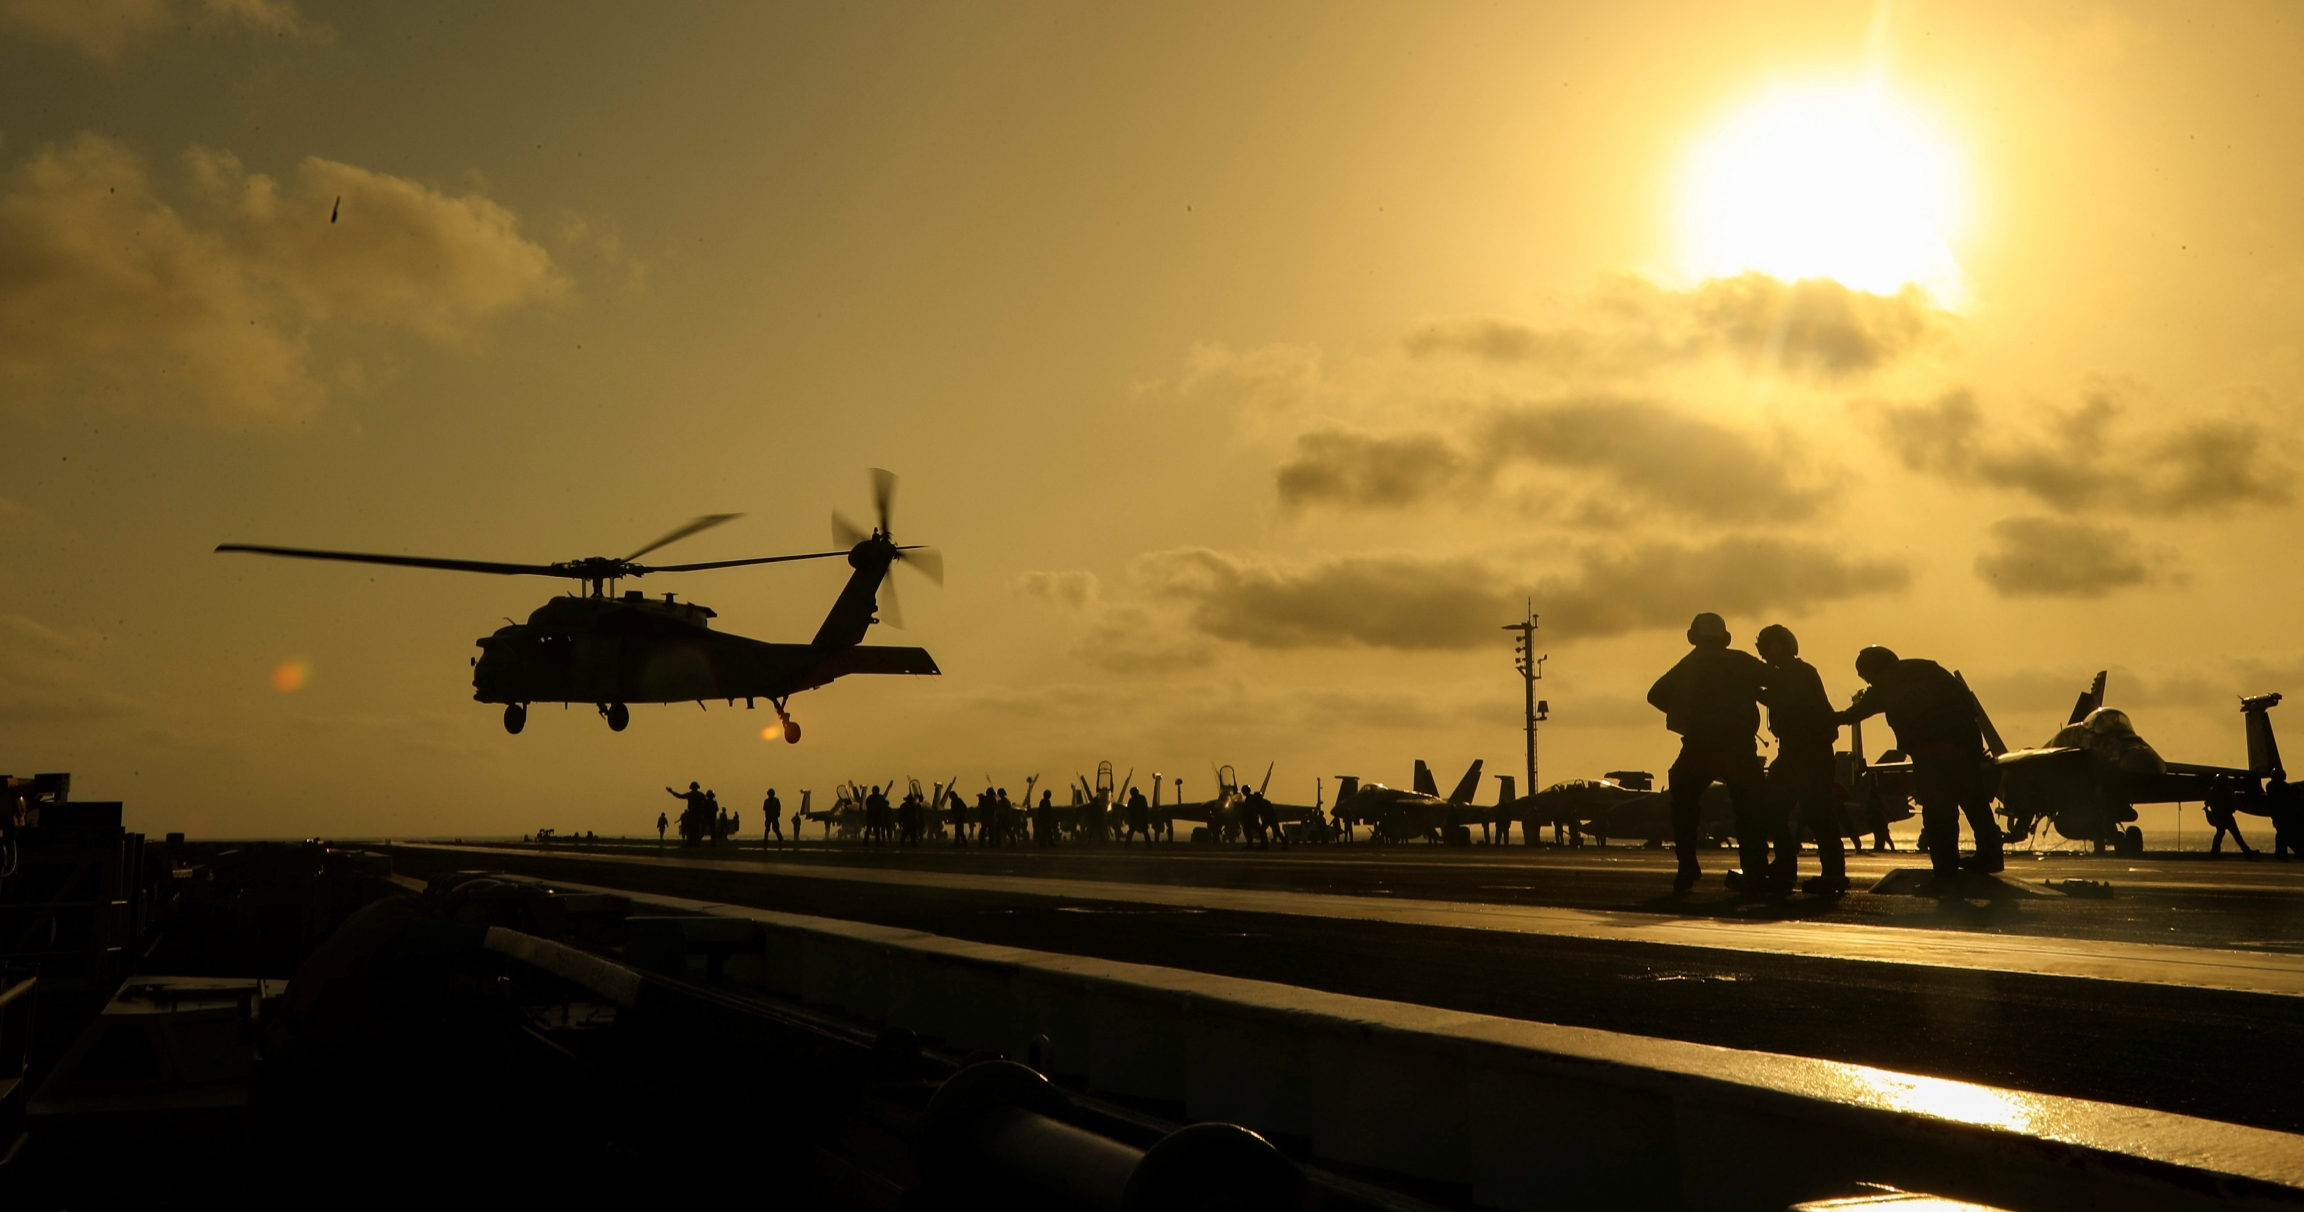 An MH-60S Seahawk helicopter lifts off the flight deck of the US Navy aircraft carrier USS Abraham Lincoln in the Arabian Sea, June 3, 2019.